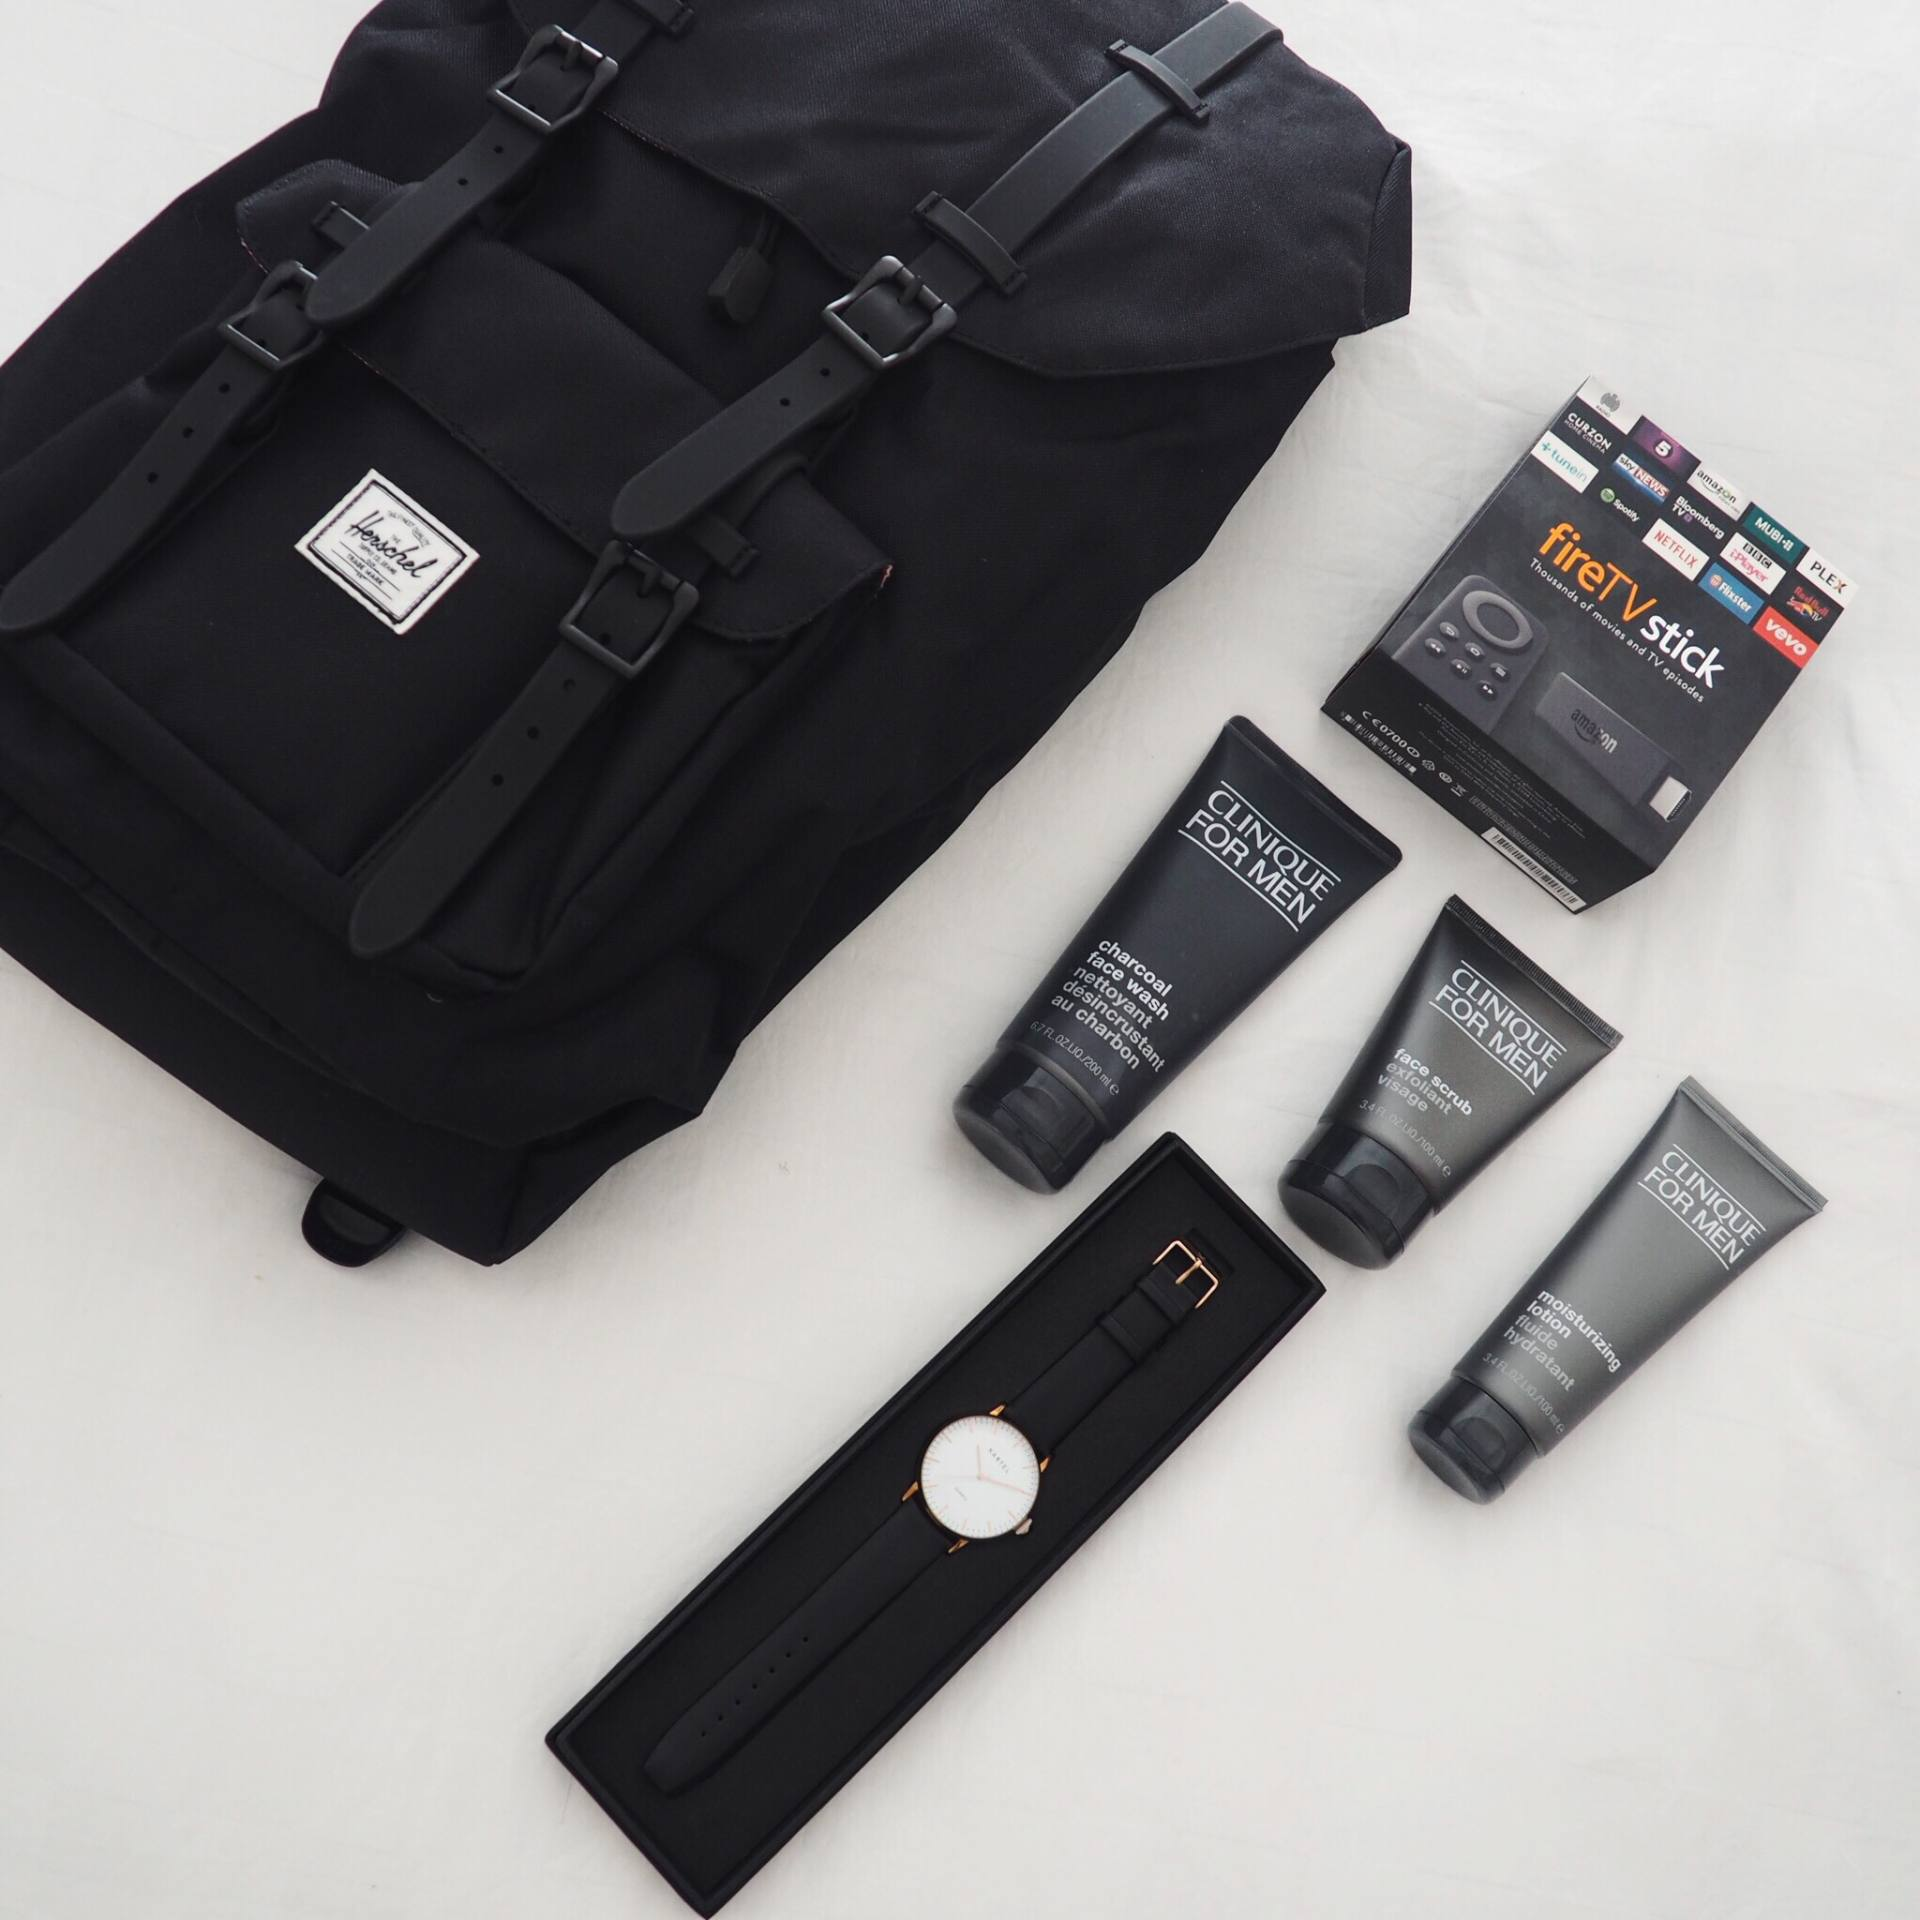 Birthday gift ideas including a Herschel Supply Co backpack, Kartel watch, Amazon Fire Stick and Clinique Skincare